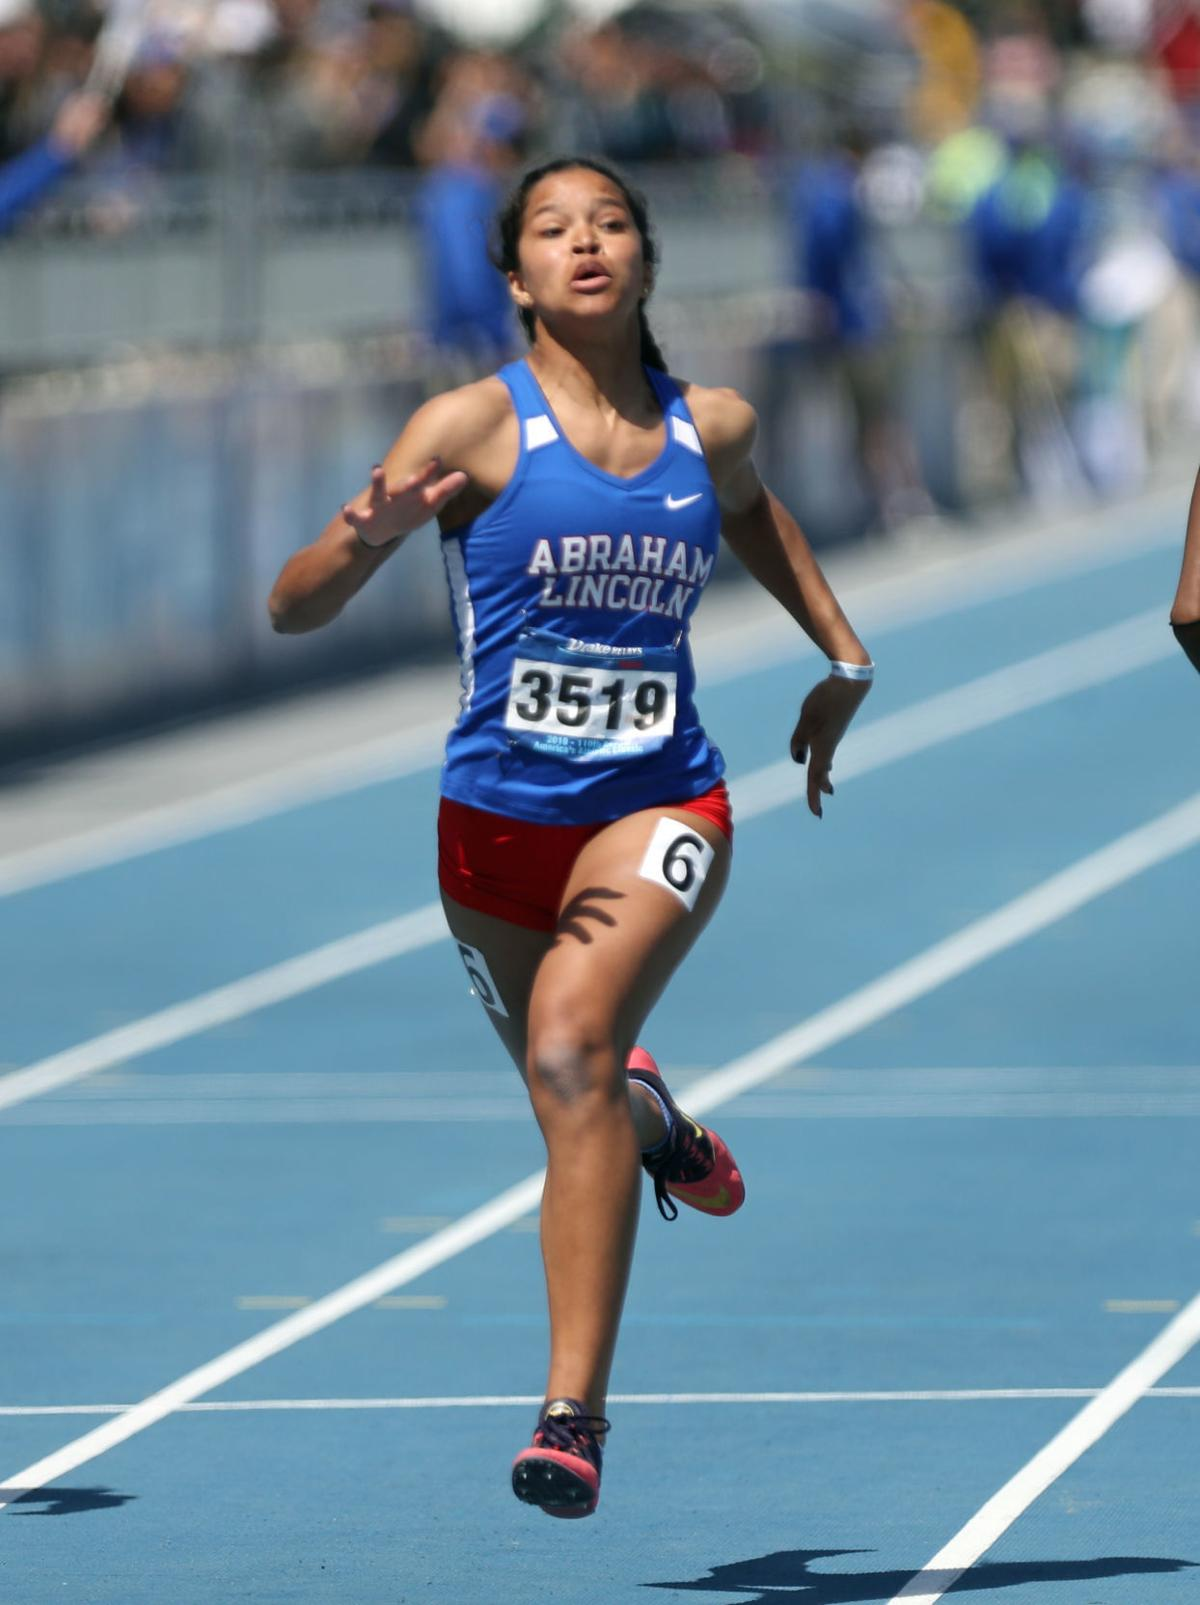 Council Bluffs Abraham Lincoln's Darby Thomas adds hurdles title to her Drake Relays haul (insert)